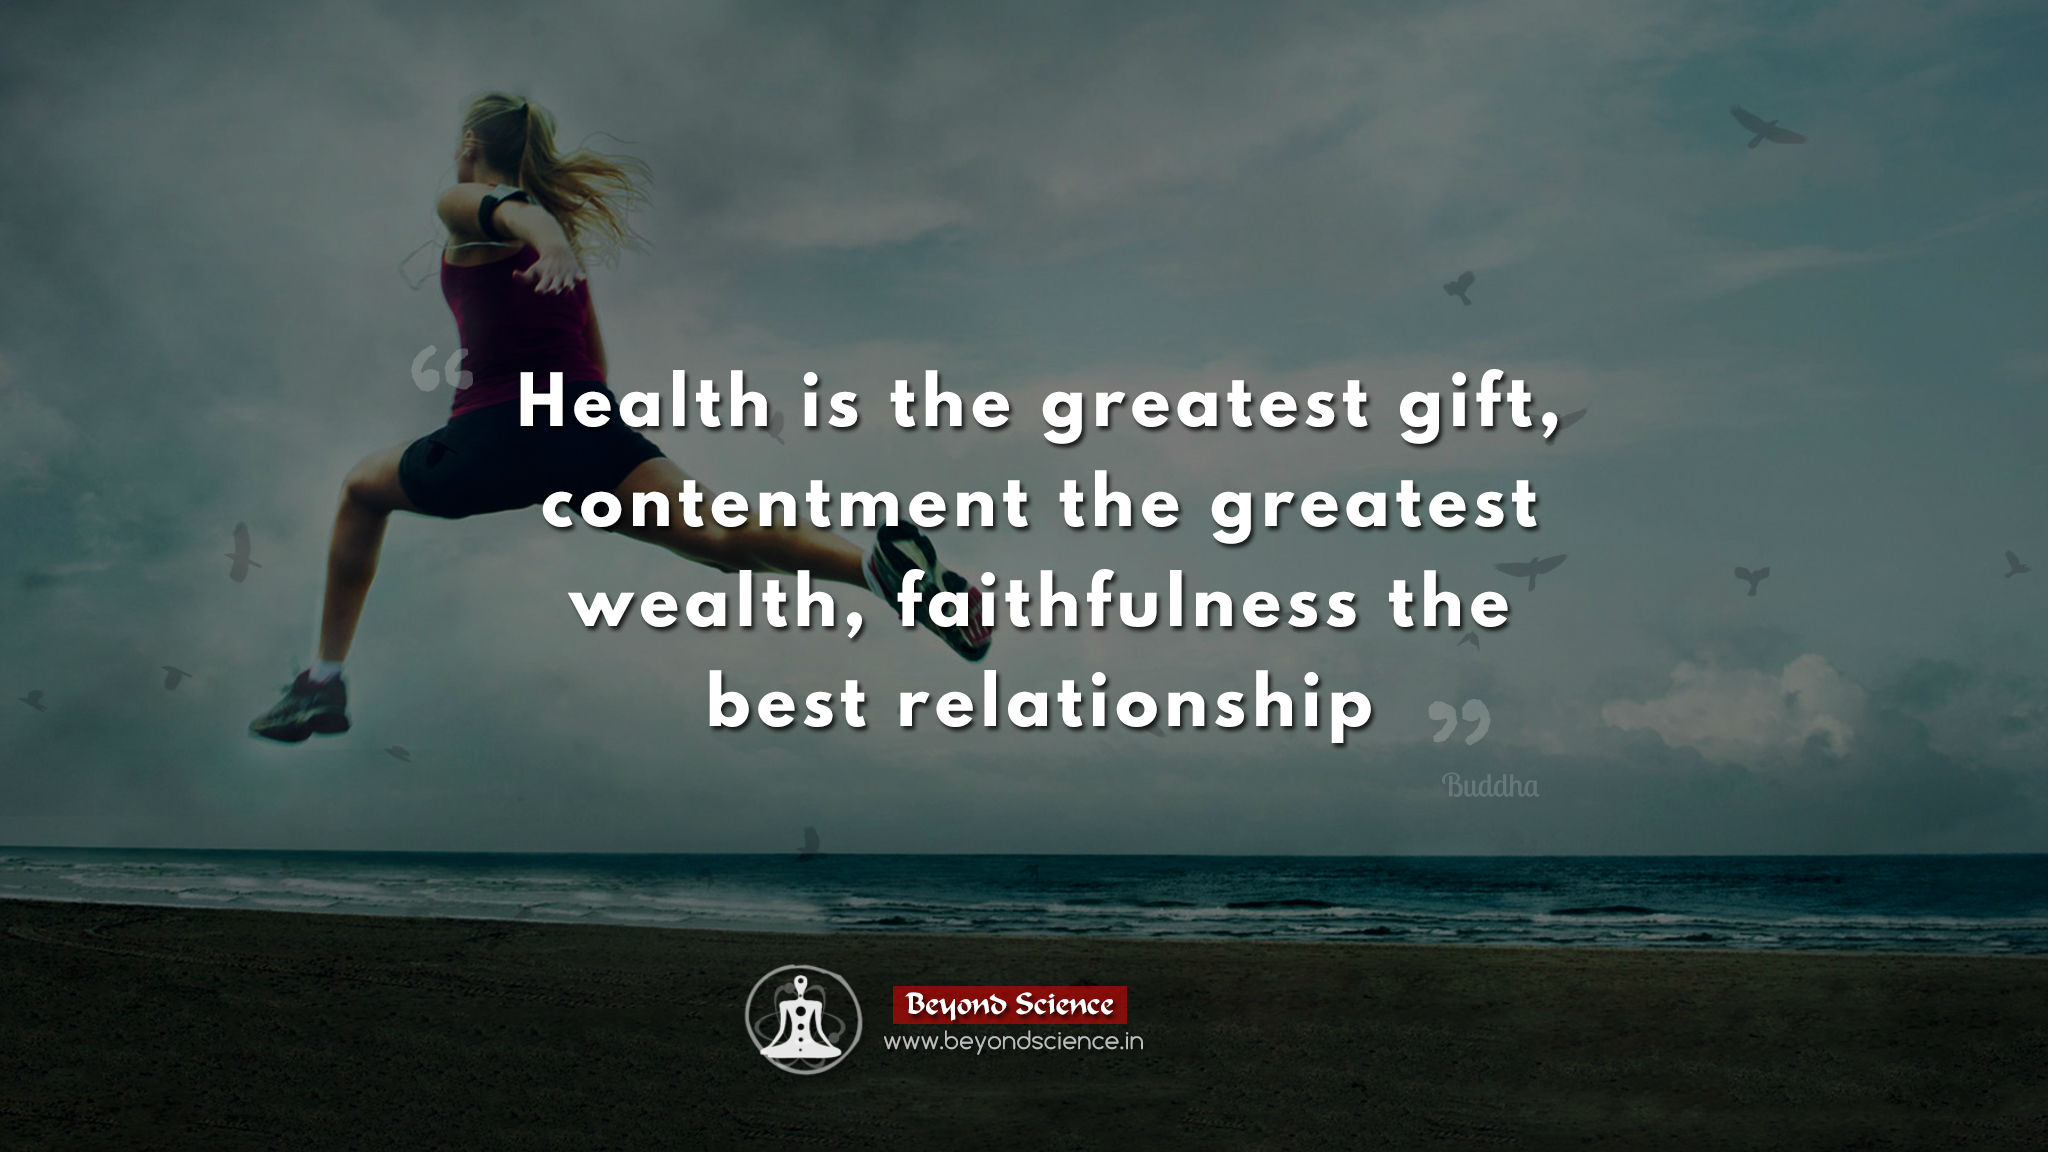 Health is the greatest gift, contentment the greatest wealth, faithfulness the best relationship